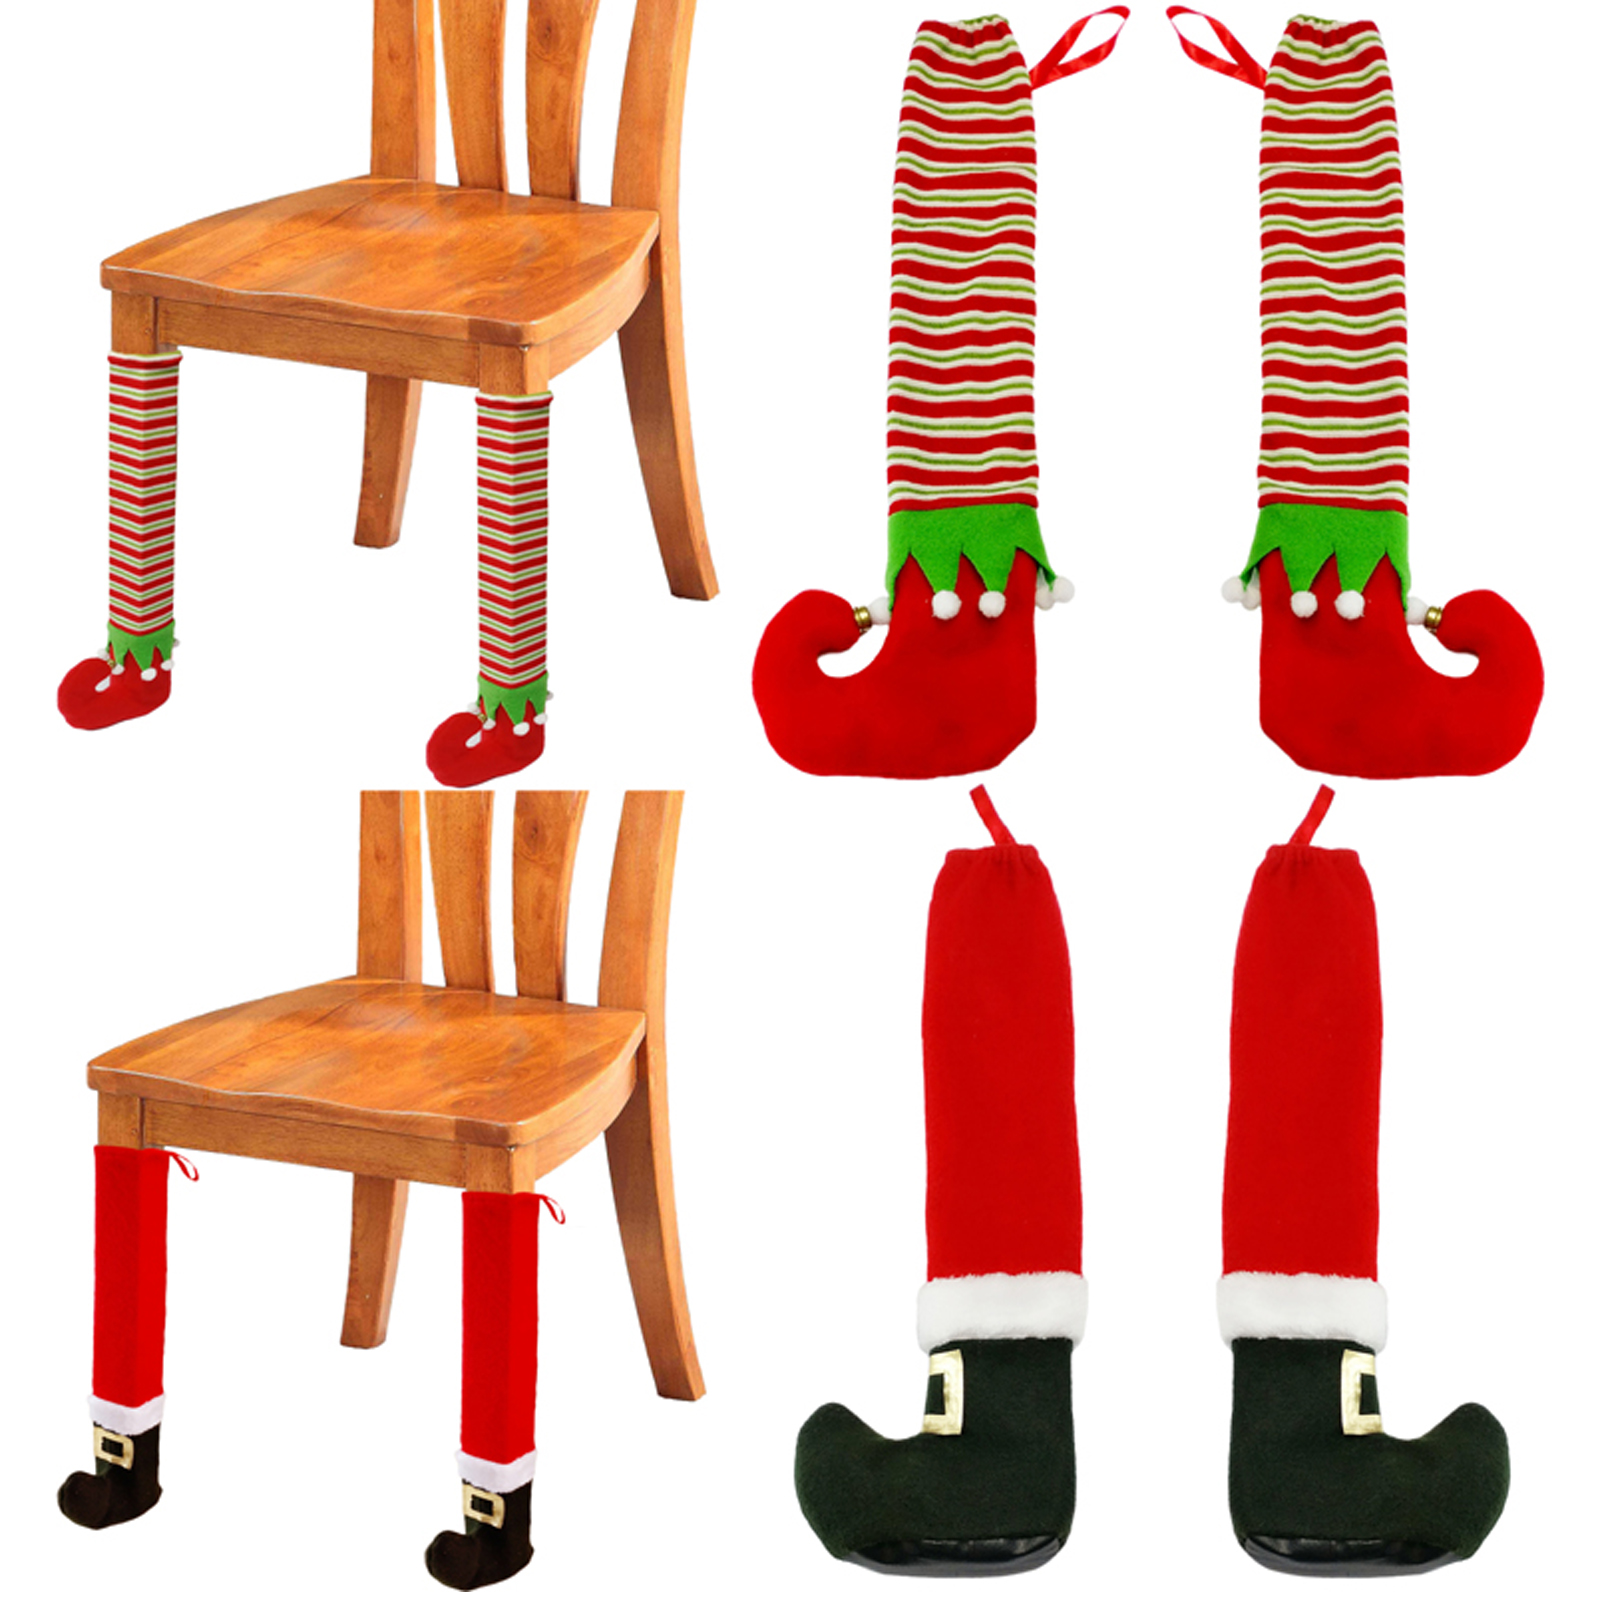 Fun Christmas Table Decorations: 1pcs Christmas Elf Foot Cover Table Leg Chair Xmas Party